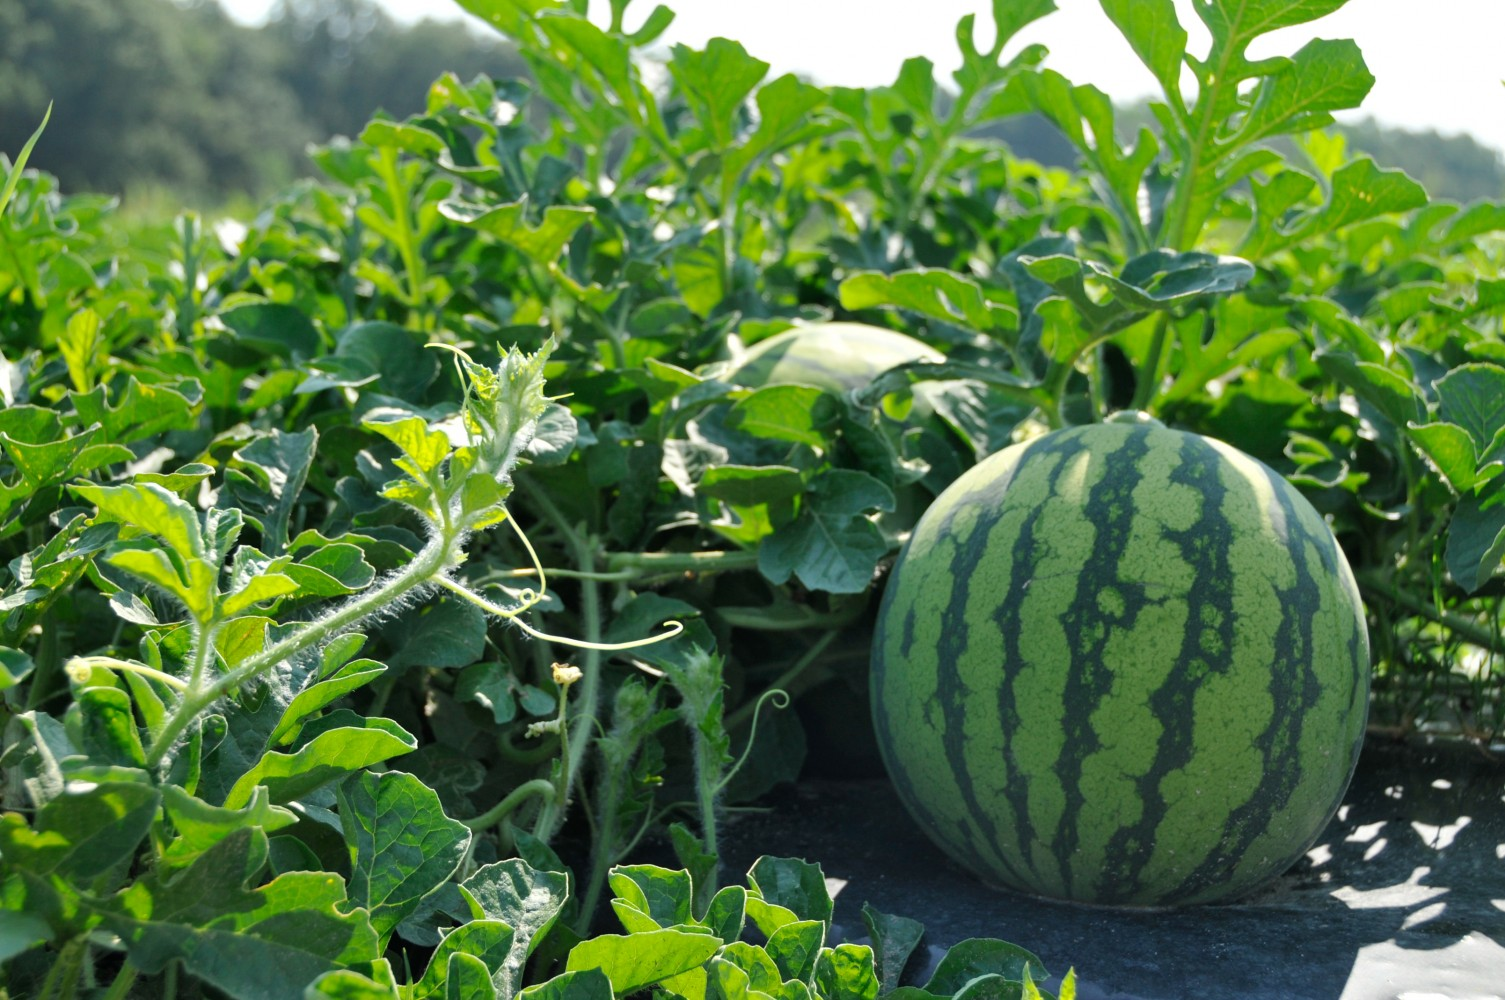 How to Growing and Harvesting Watermelon